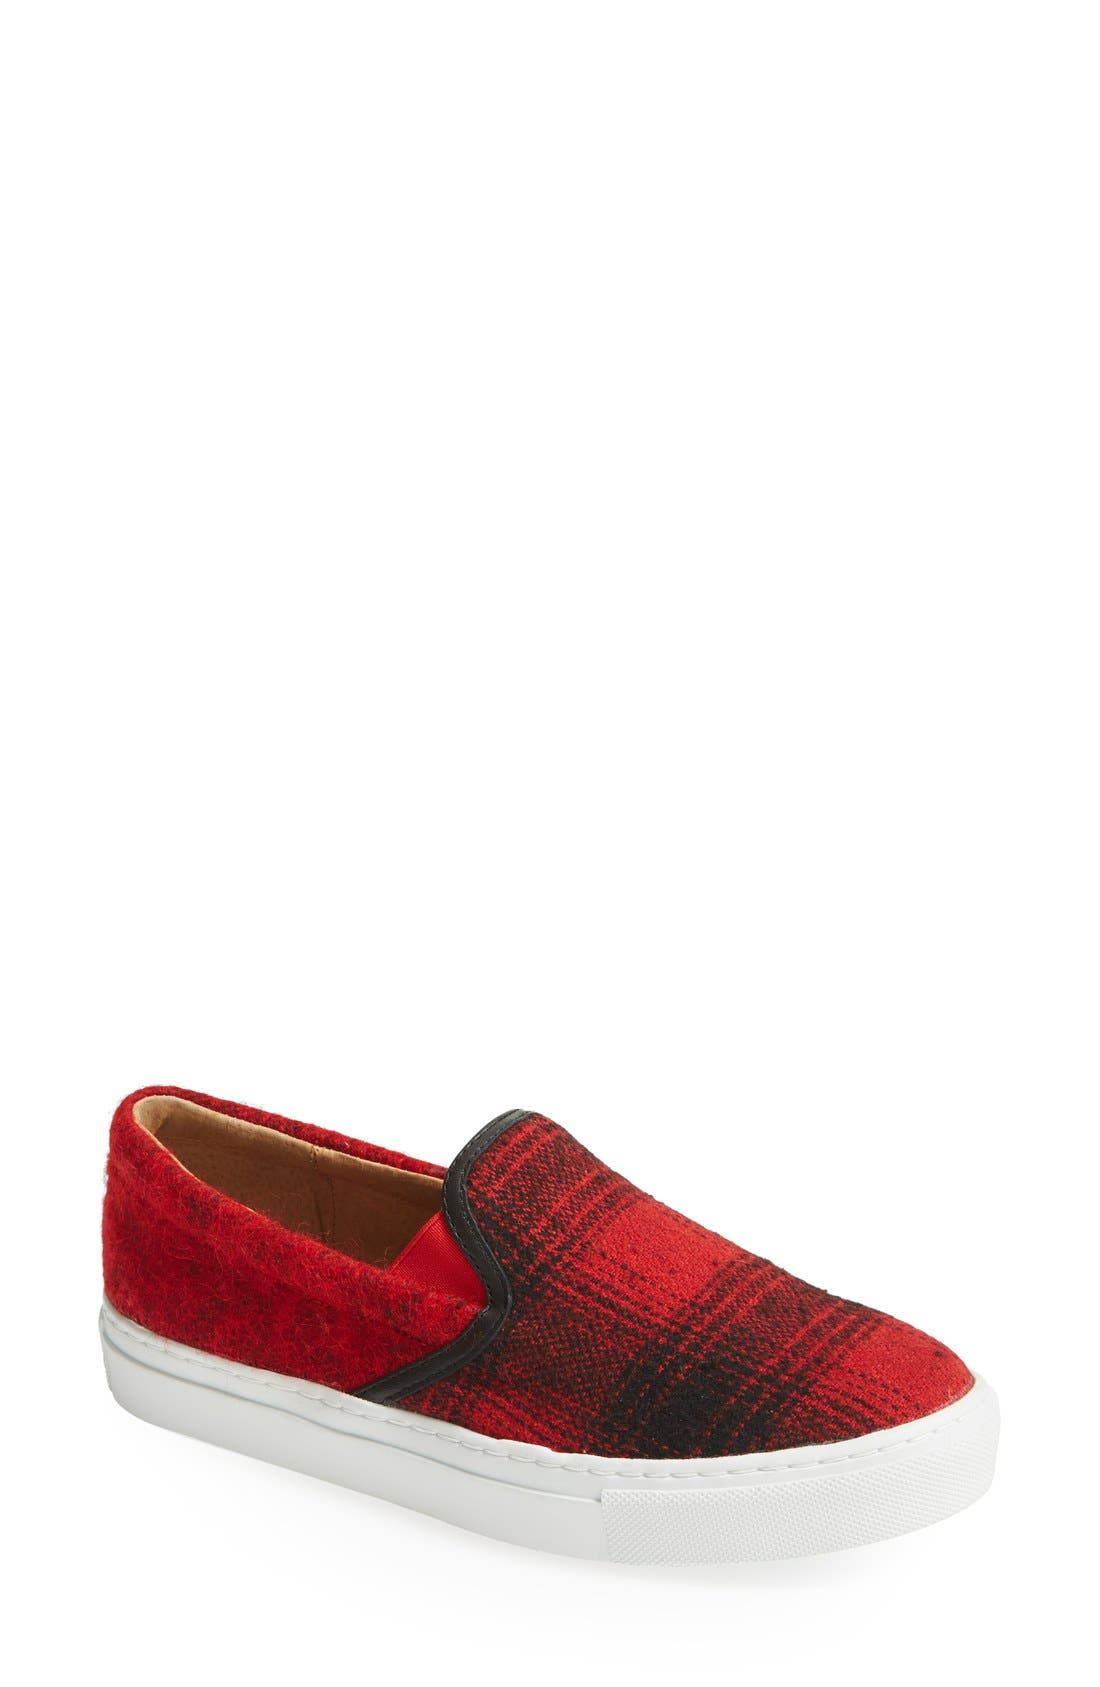 Alternate Image 1 Selected - Bettye by Bettye Muller 'Bentley' Slip-On Sneaker (Women)